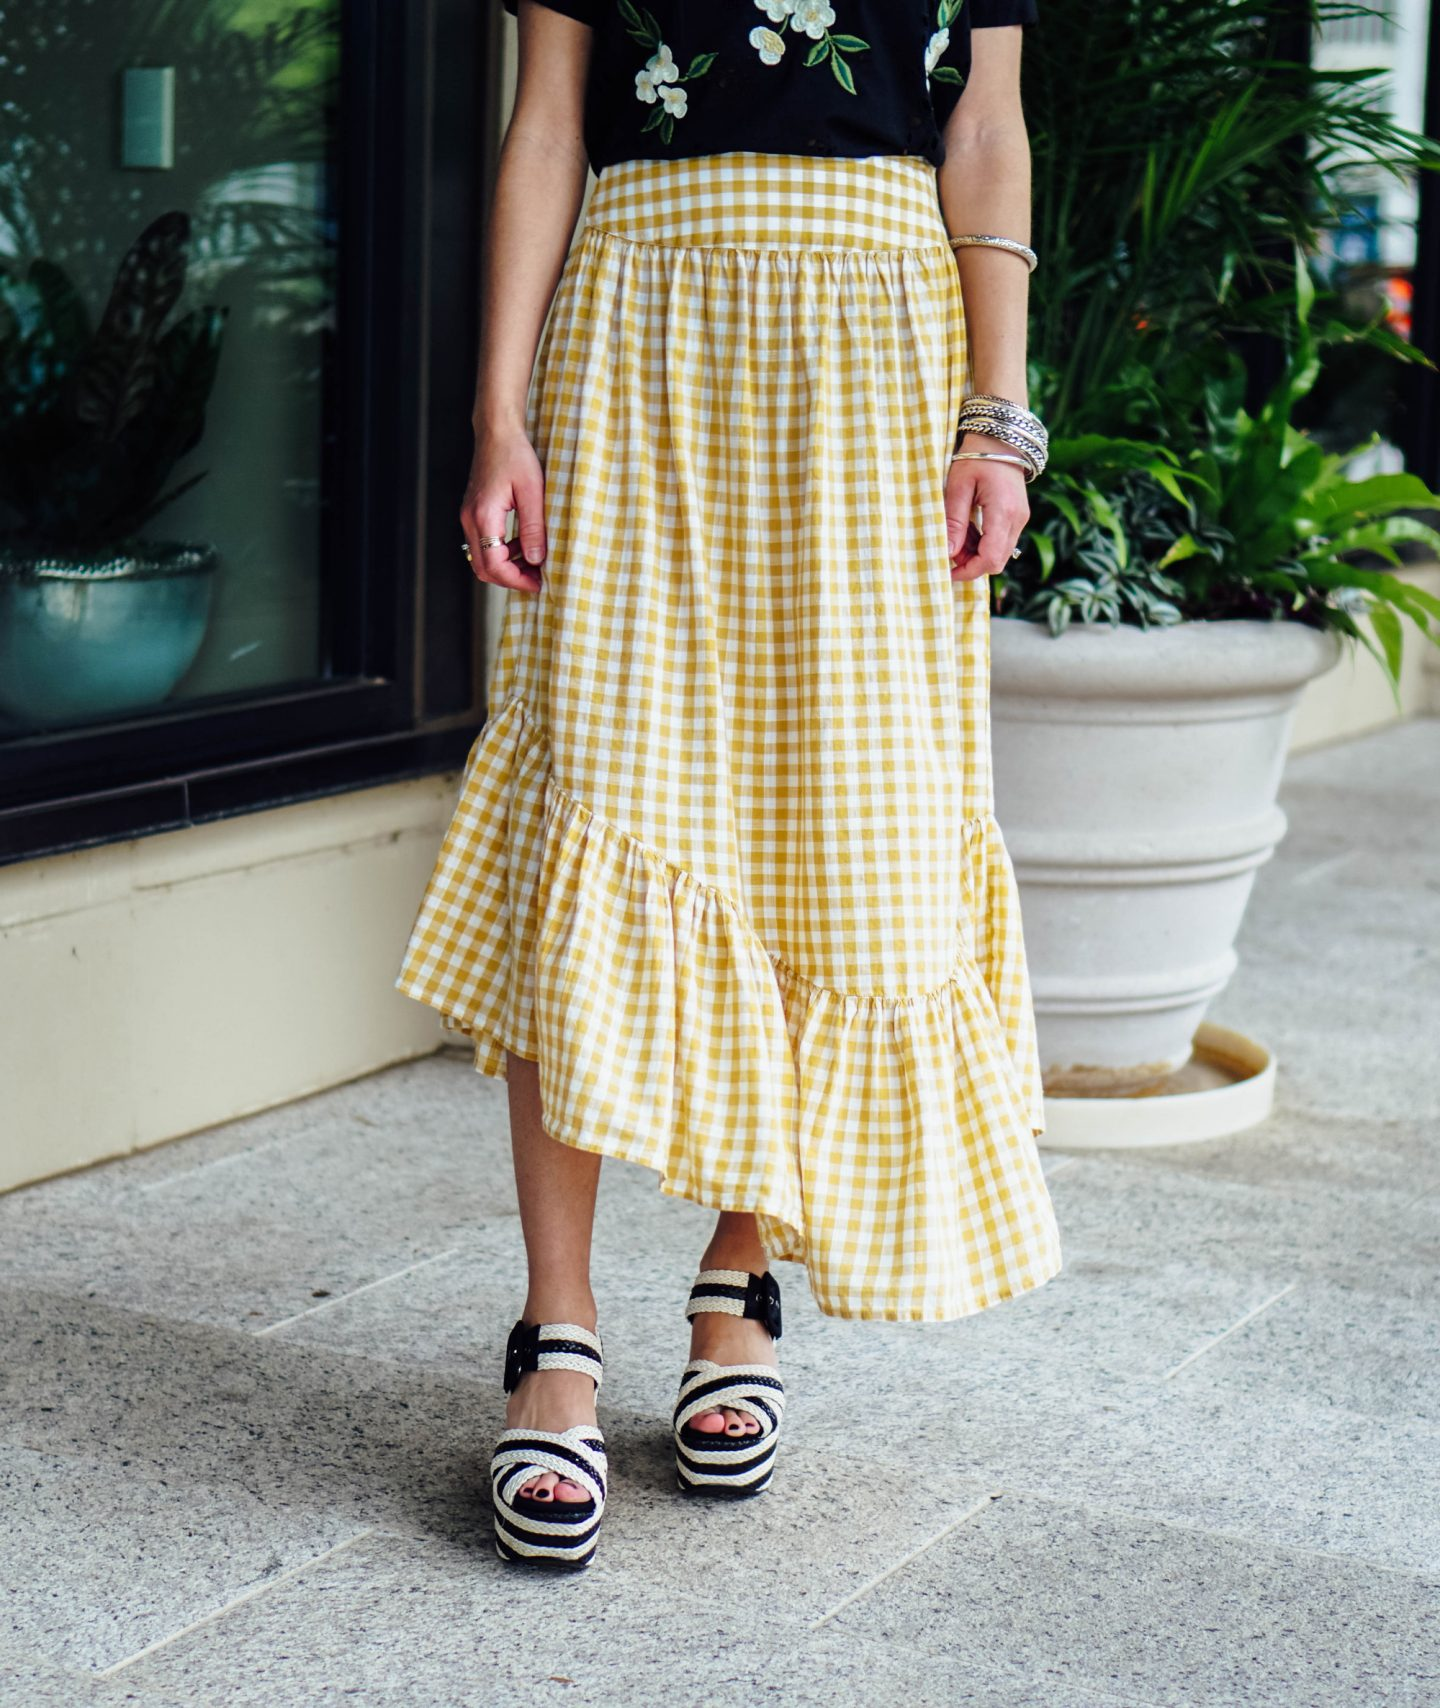 I'm over on thedandyliar.com showing you how gingham can be worn four different ways, and that gingham is no longer just for button-down shirts! I'm also rounding up my favorite gingham pieces in an easy-to-shop list.